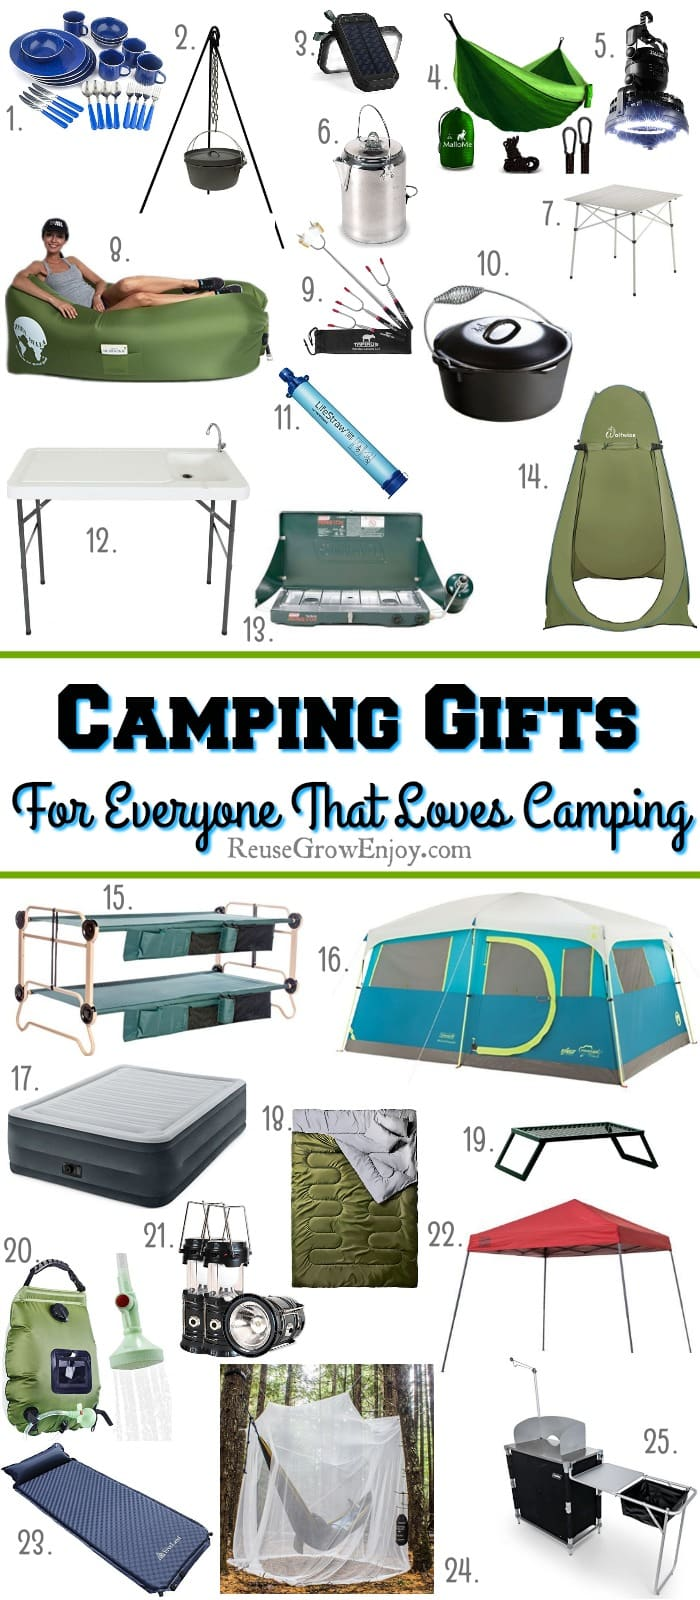 If you are looking for gift ideas for ones who love camping, I got you covered. Check out this list of 25 top camping gifts for everyone that loves camping!